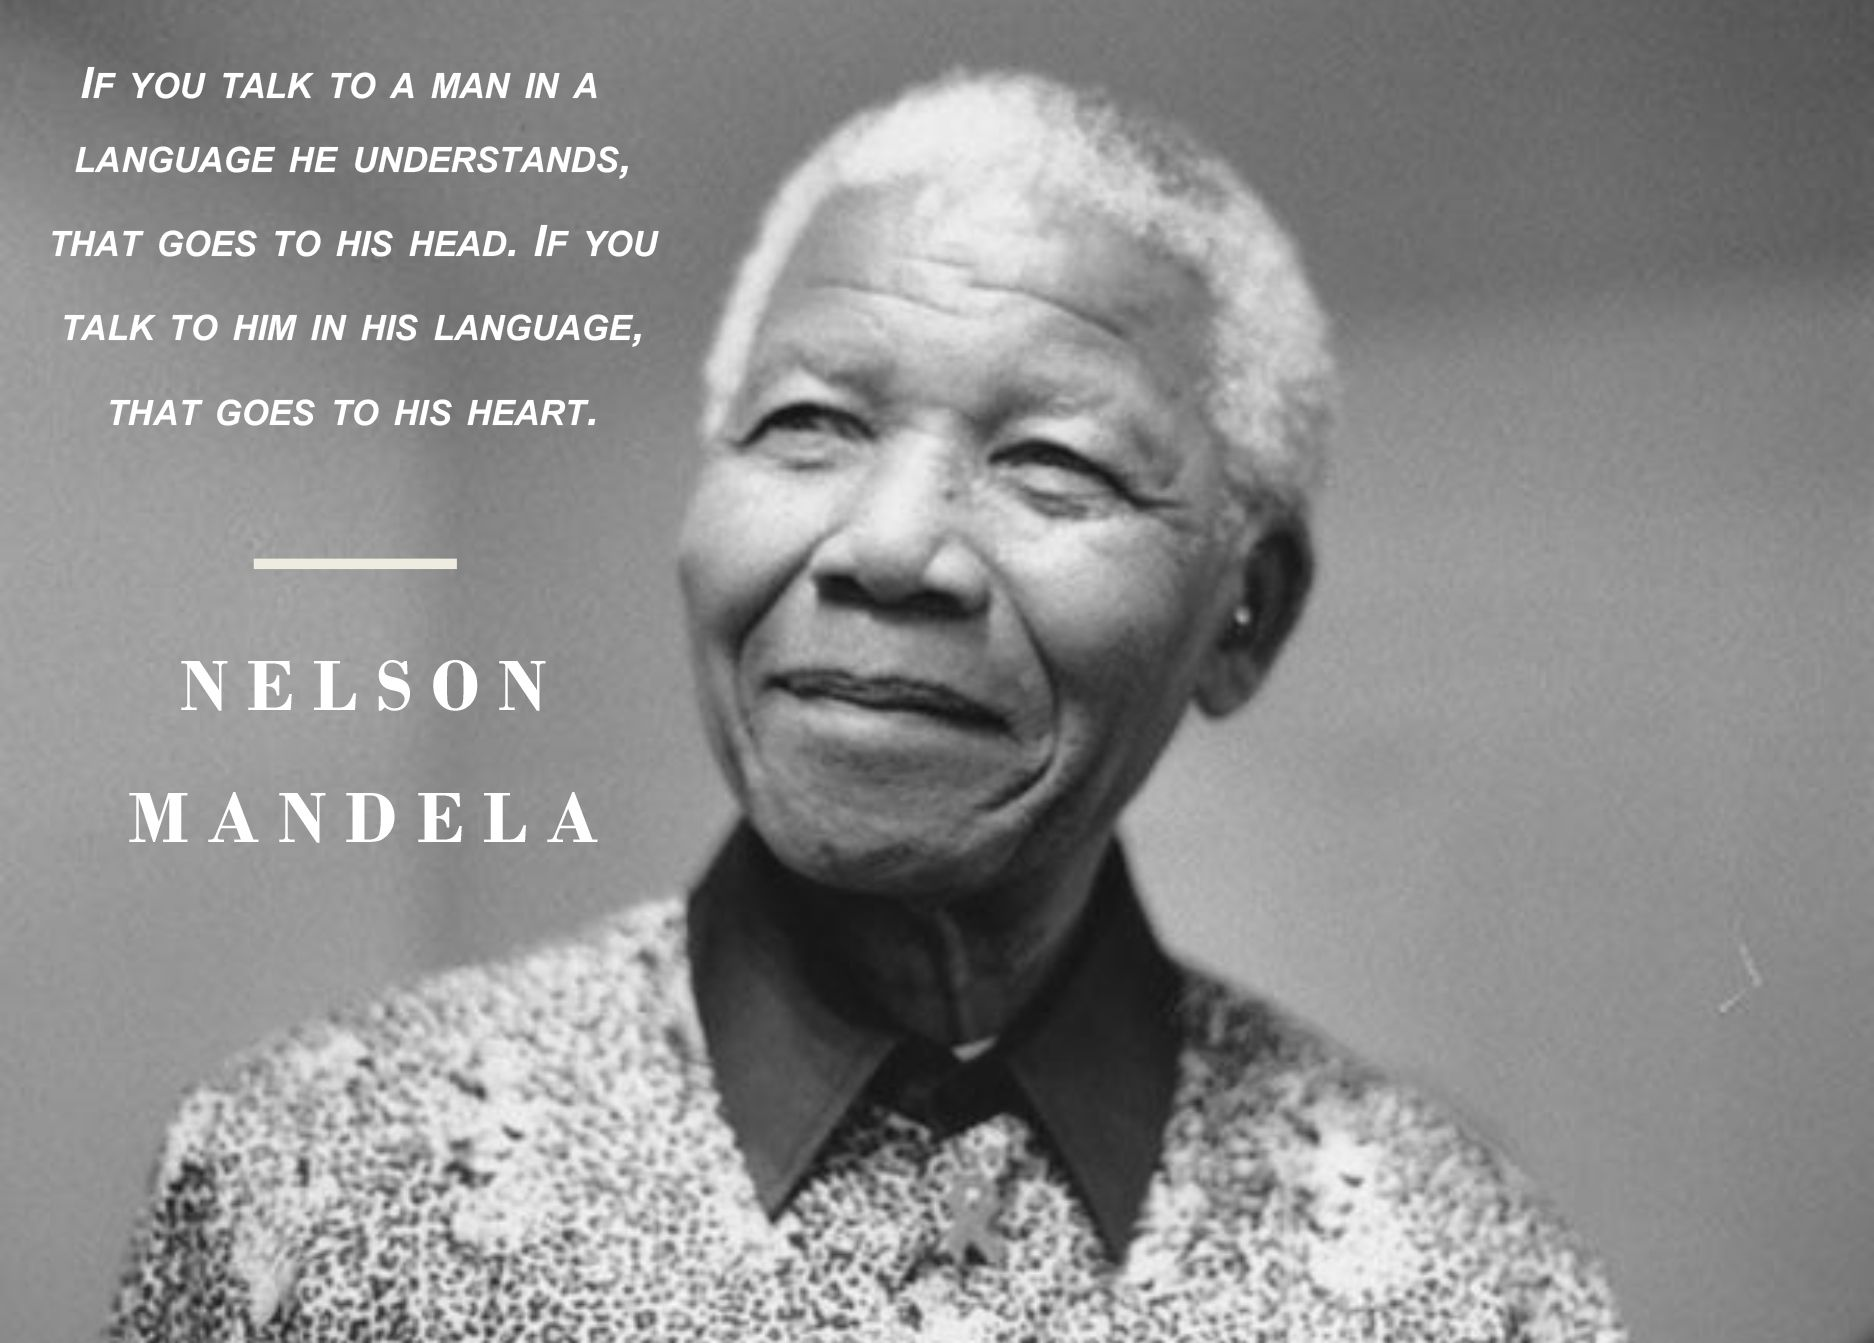 nelson mandela research paper Free nelson mandela papers, essays, and research papers.